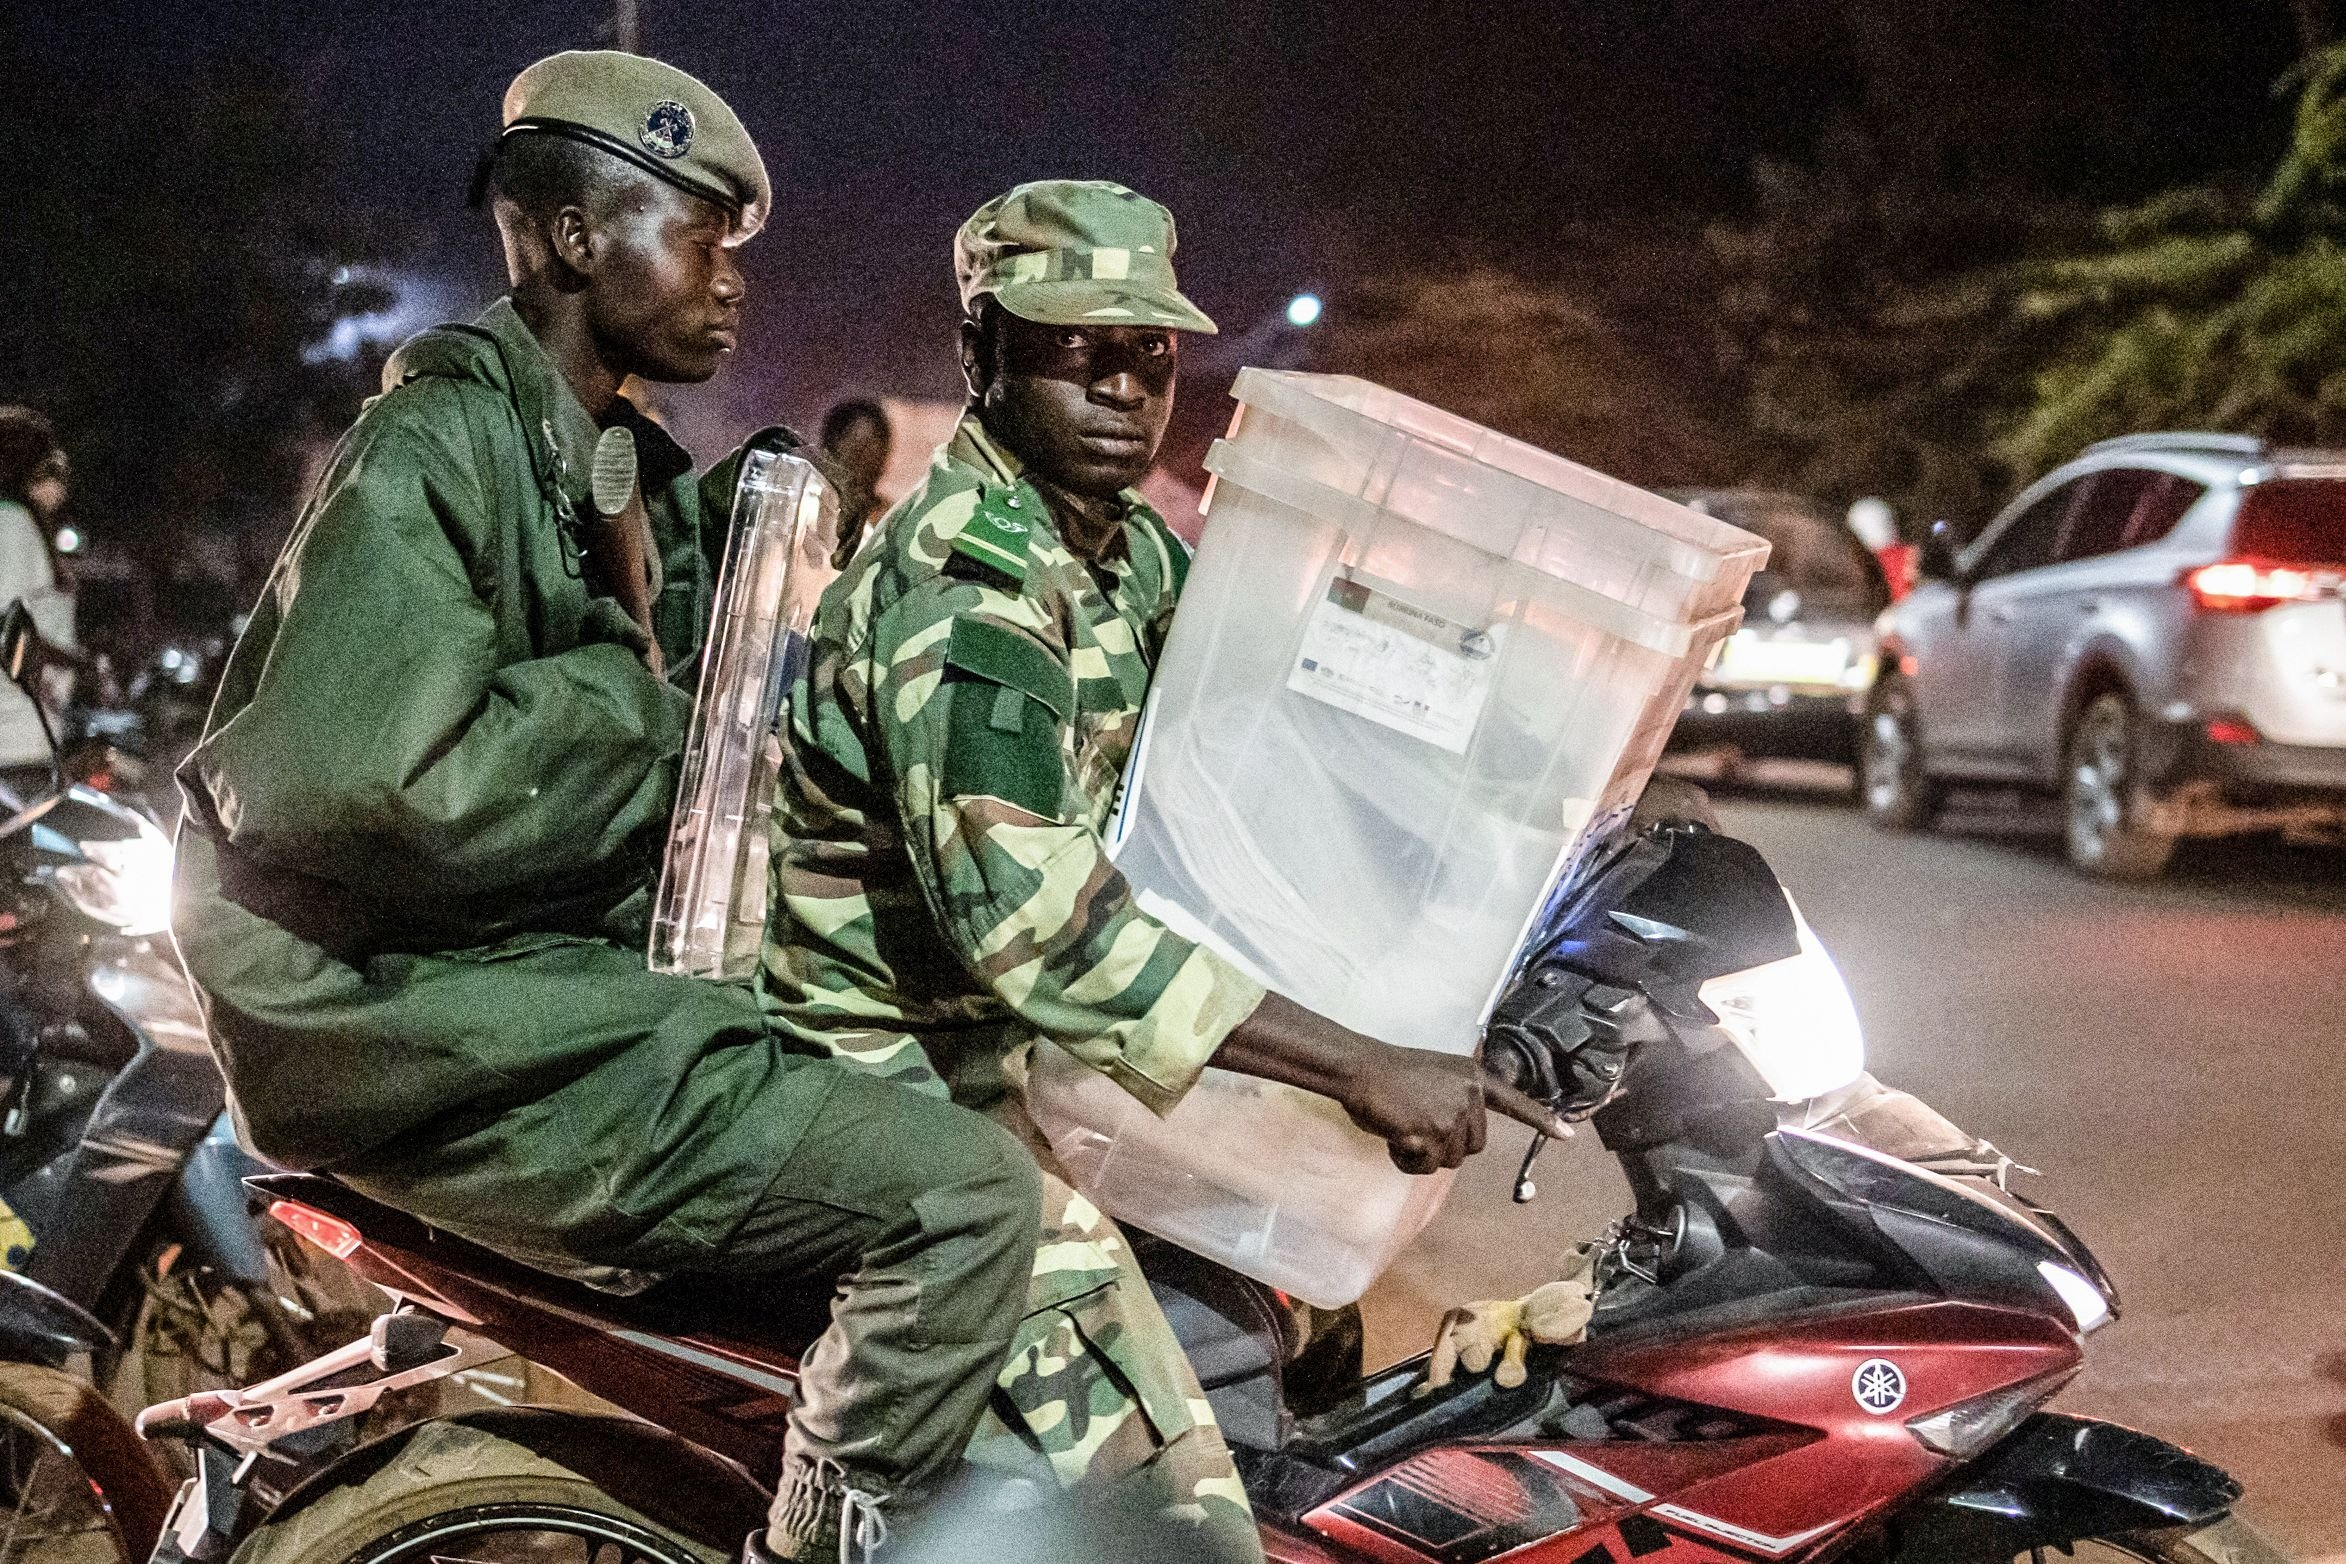 Security forces leave a city hall where the Independent National Electoral Commission (CENI) distributes electoral material to polling station directors and members with a polling box on the eve of the presidential election in the capital Ouagadougou, Burkina Faso, Nov. 21, 2020. (Photo by OLYMPIA DE MAISMONT / AFP)